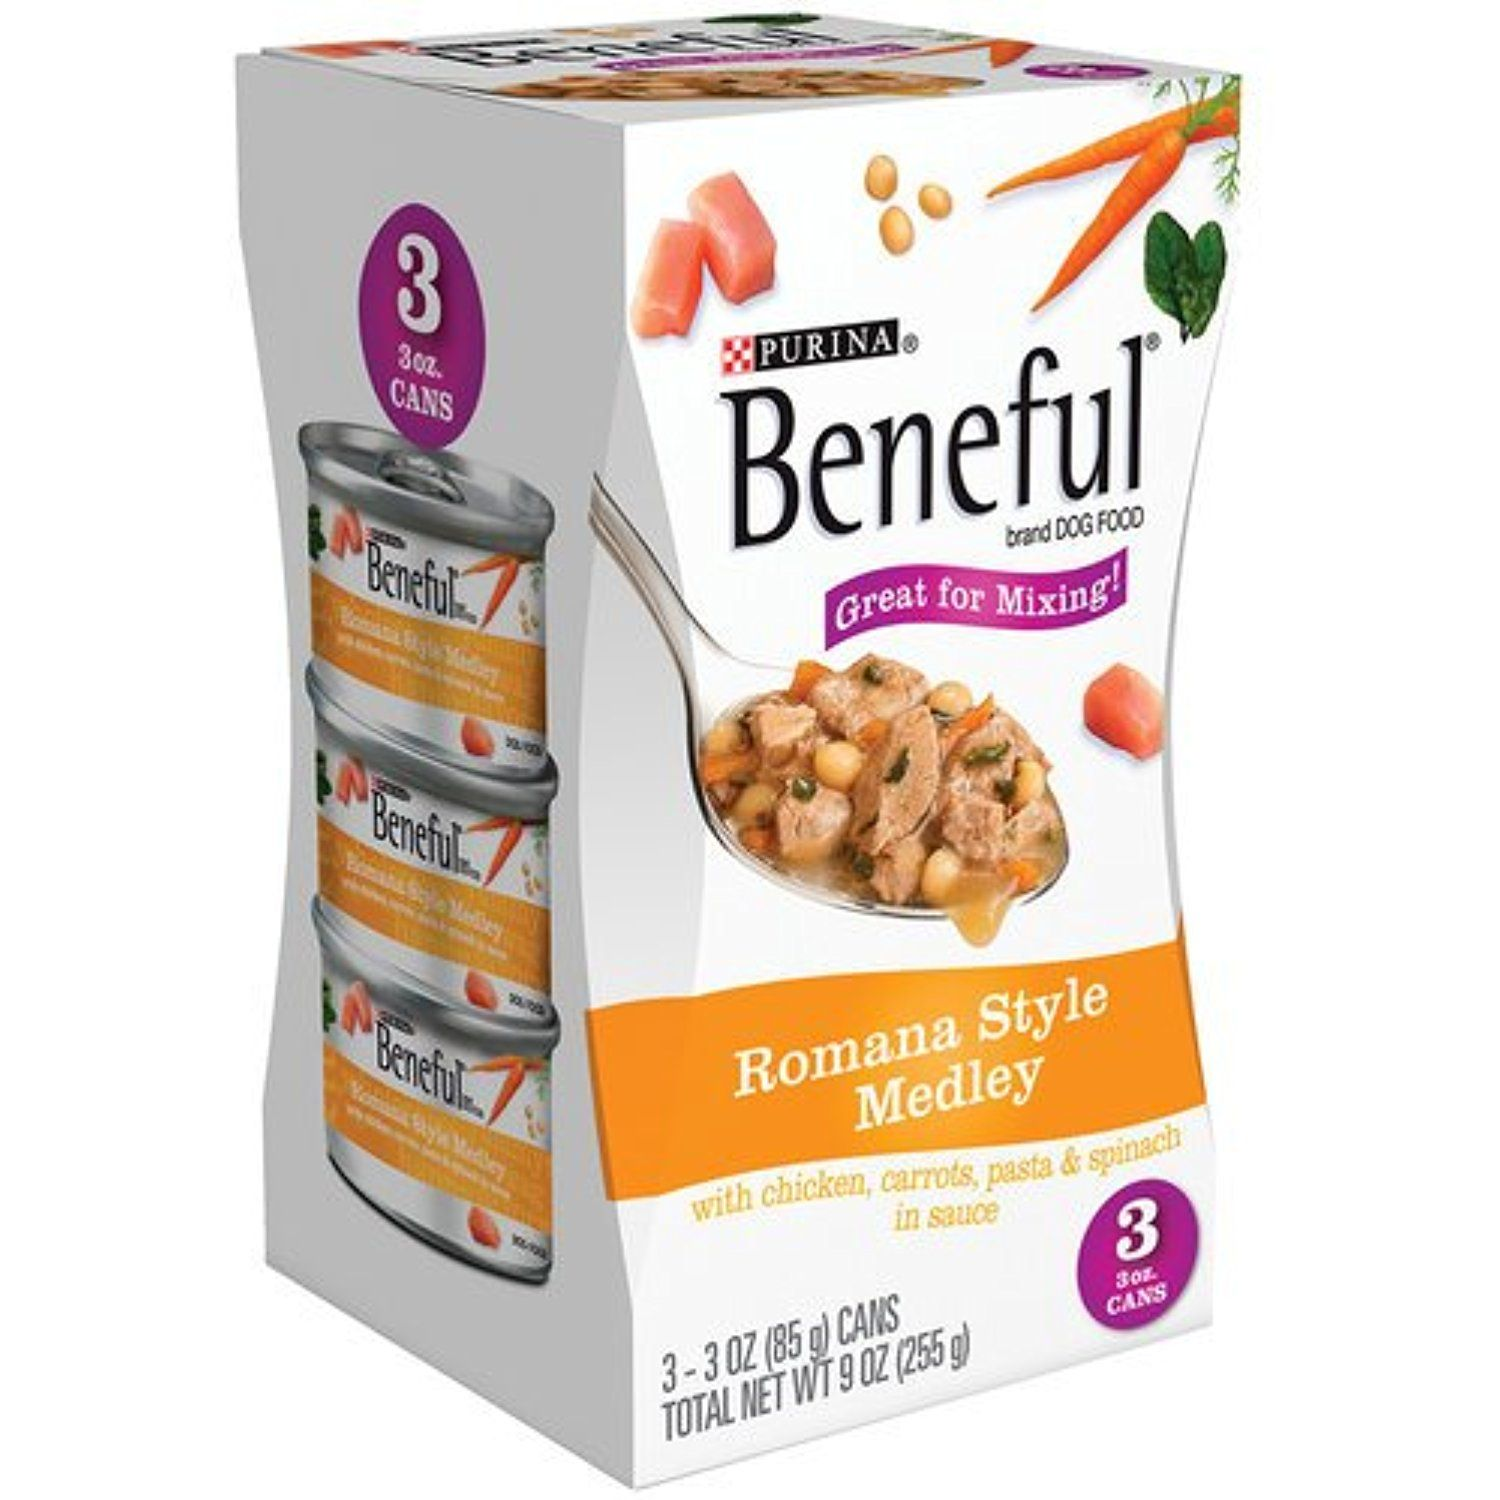 Beneful roman style medley canned dog food 9 oz pack of